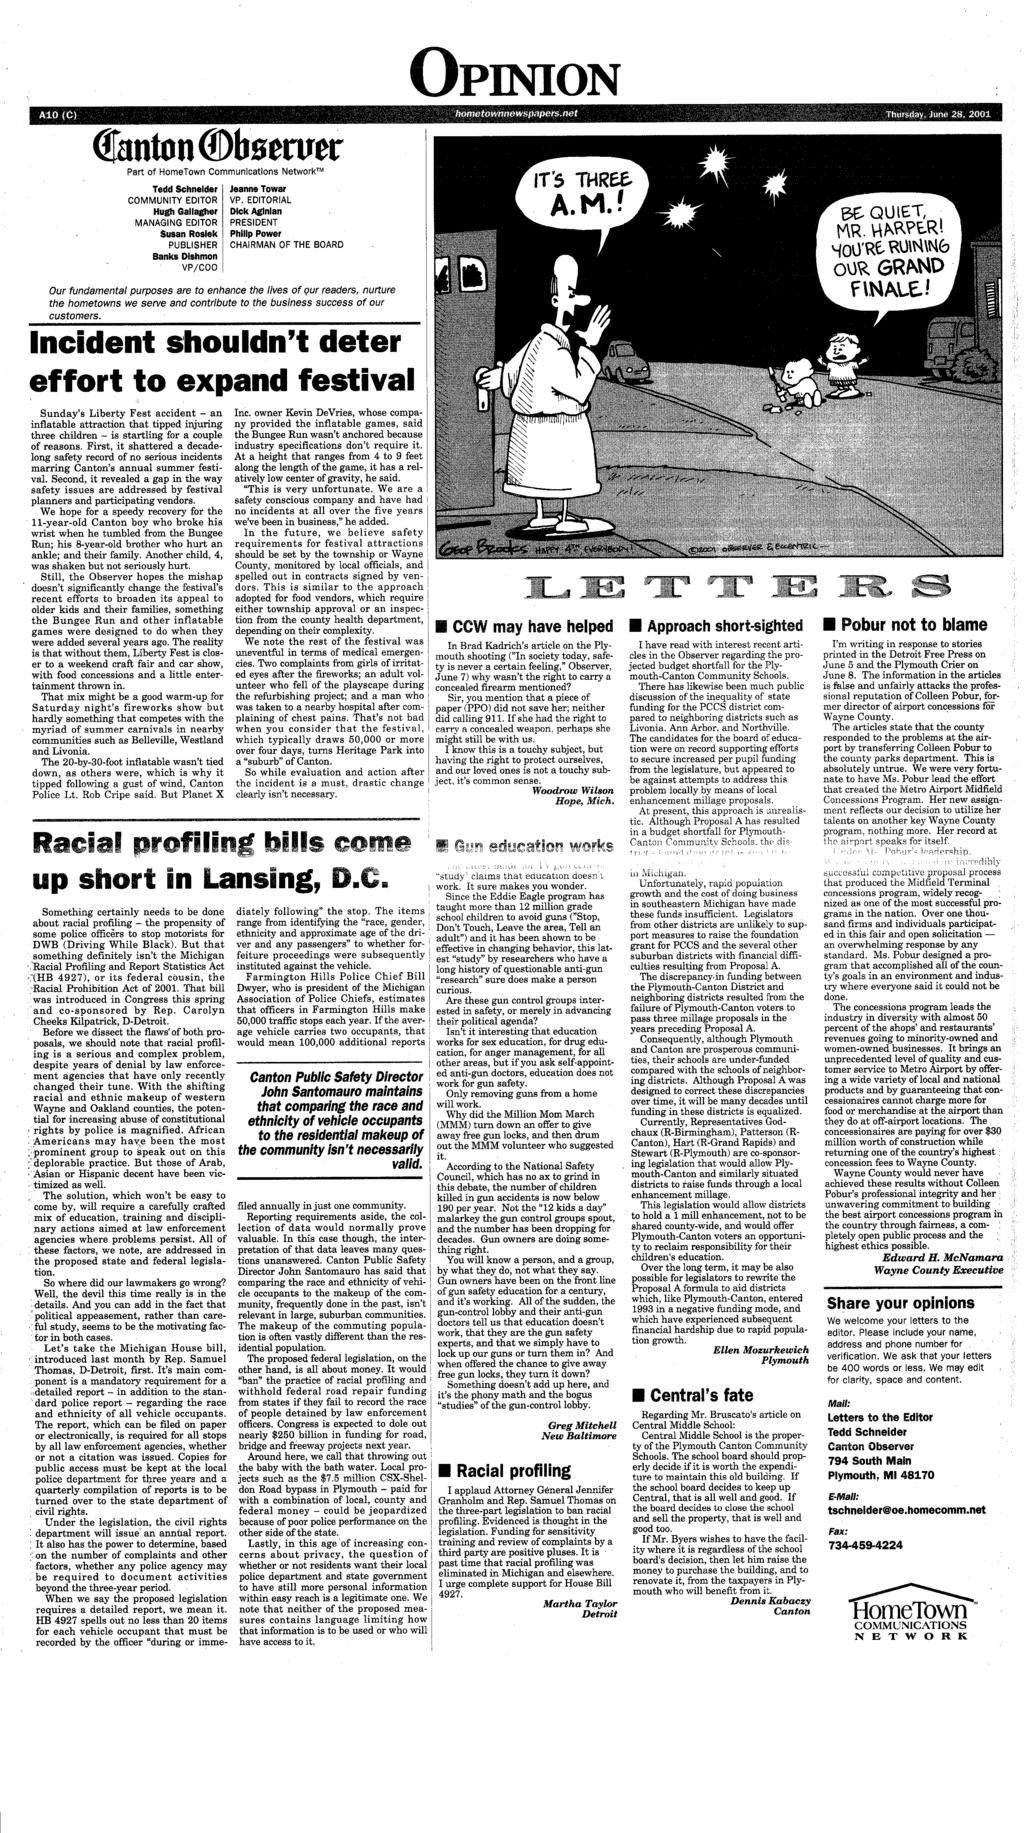 Canton Dbsmrc Your Hometown Newspaper Serving For 26 Years Pdf Diagram Whirlpool Cabrio Washer Parts Uploaded By Nikita On Opinion A10 C Home To Wnnewspnpers